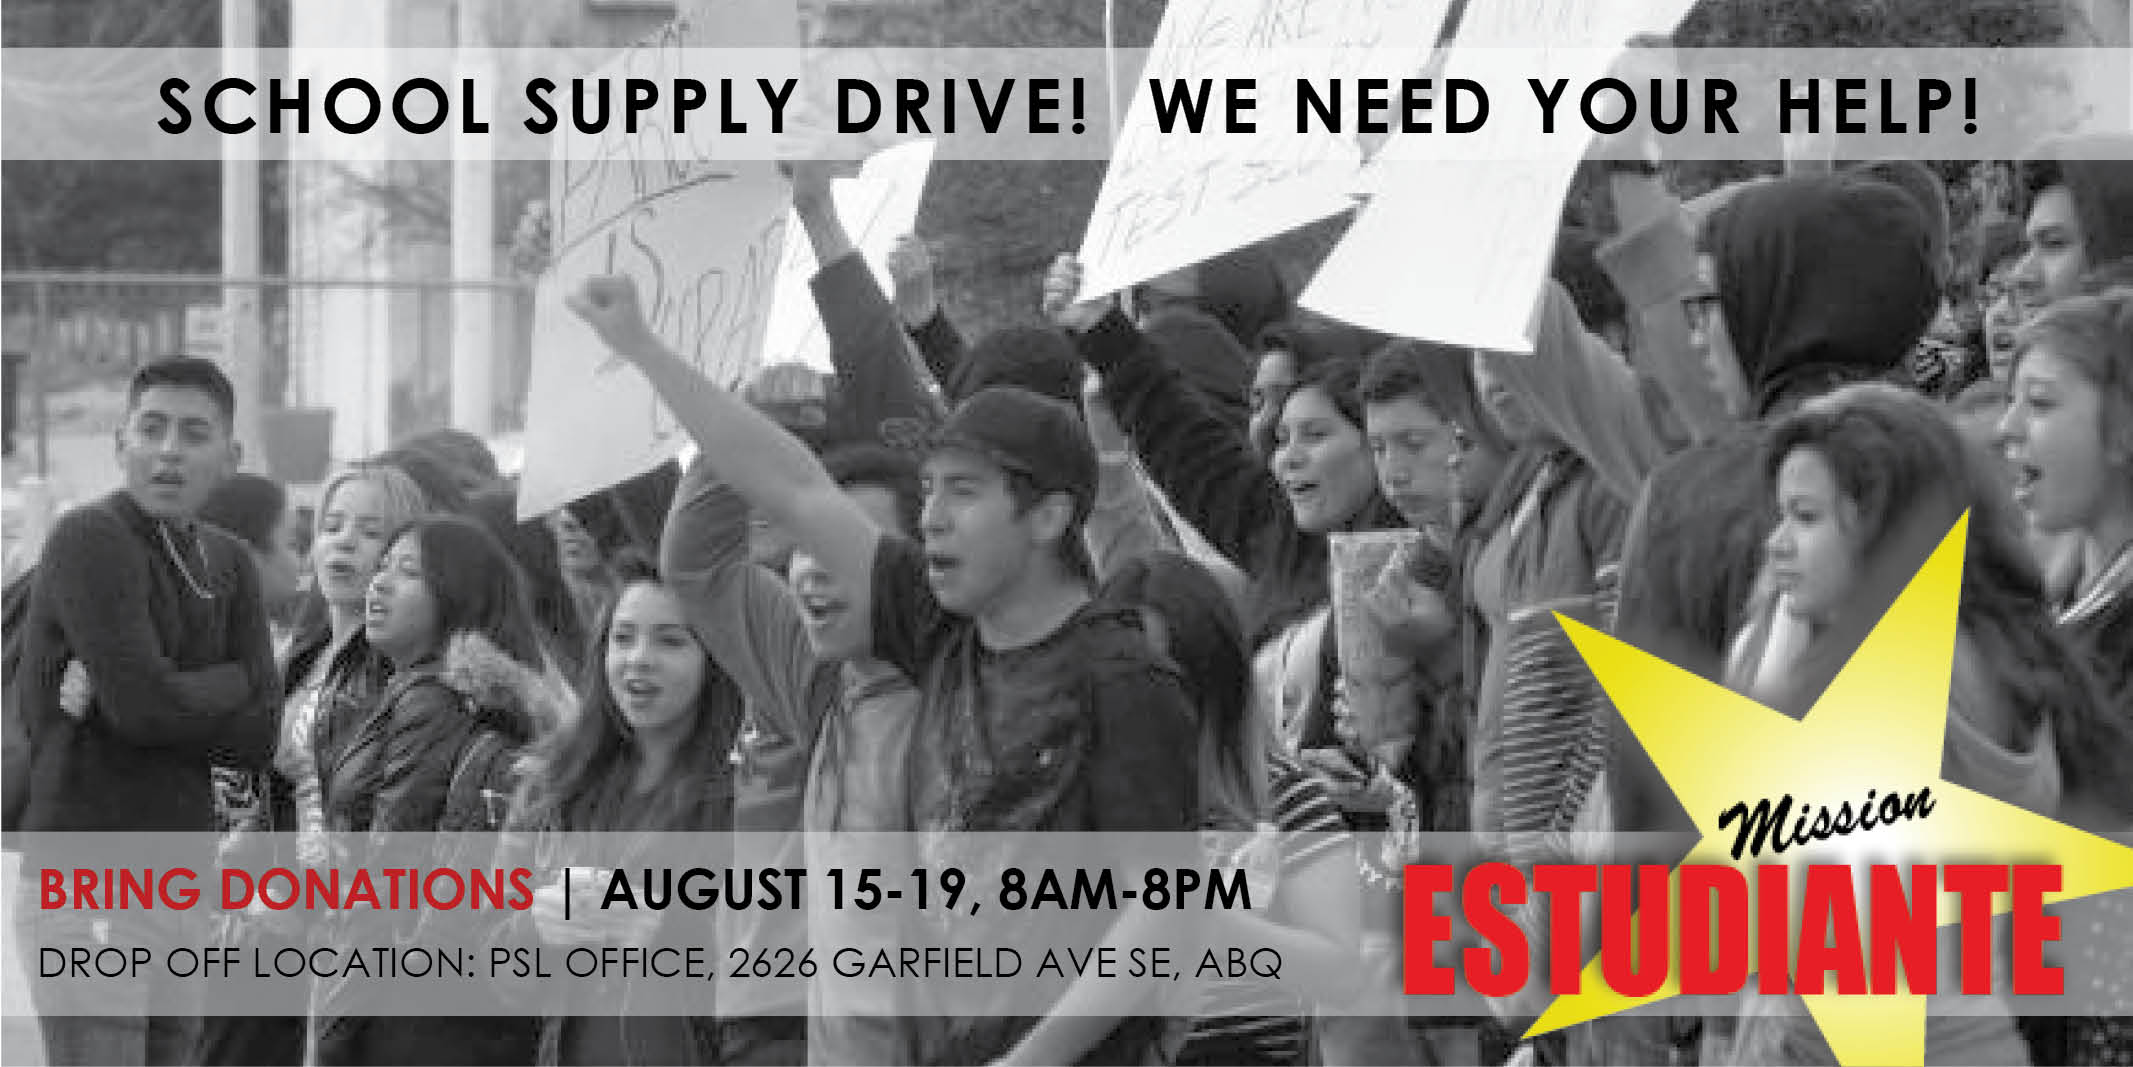 Mission Estudiante: PSL School Supply Drive, August 15-19